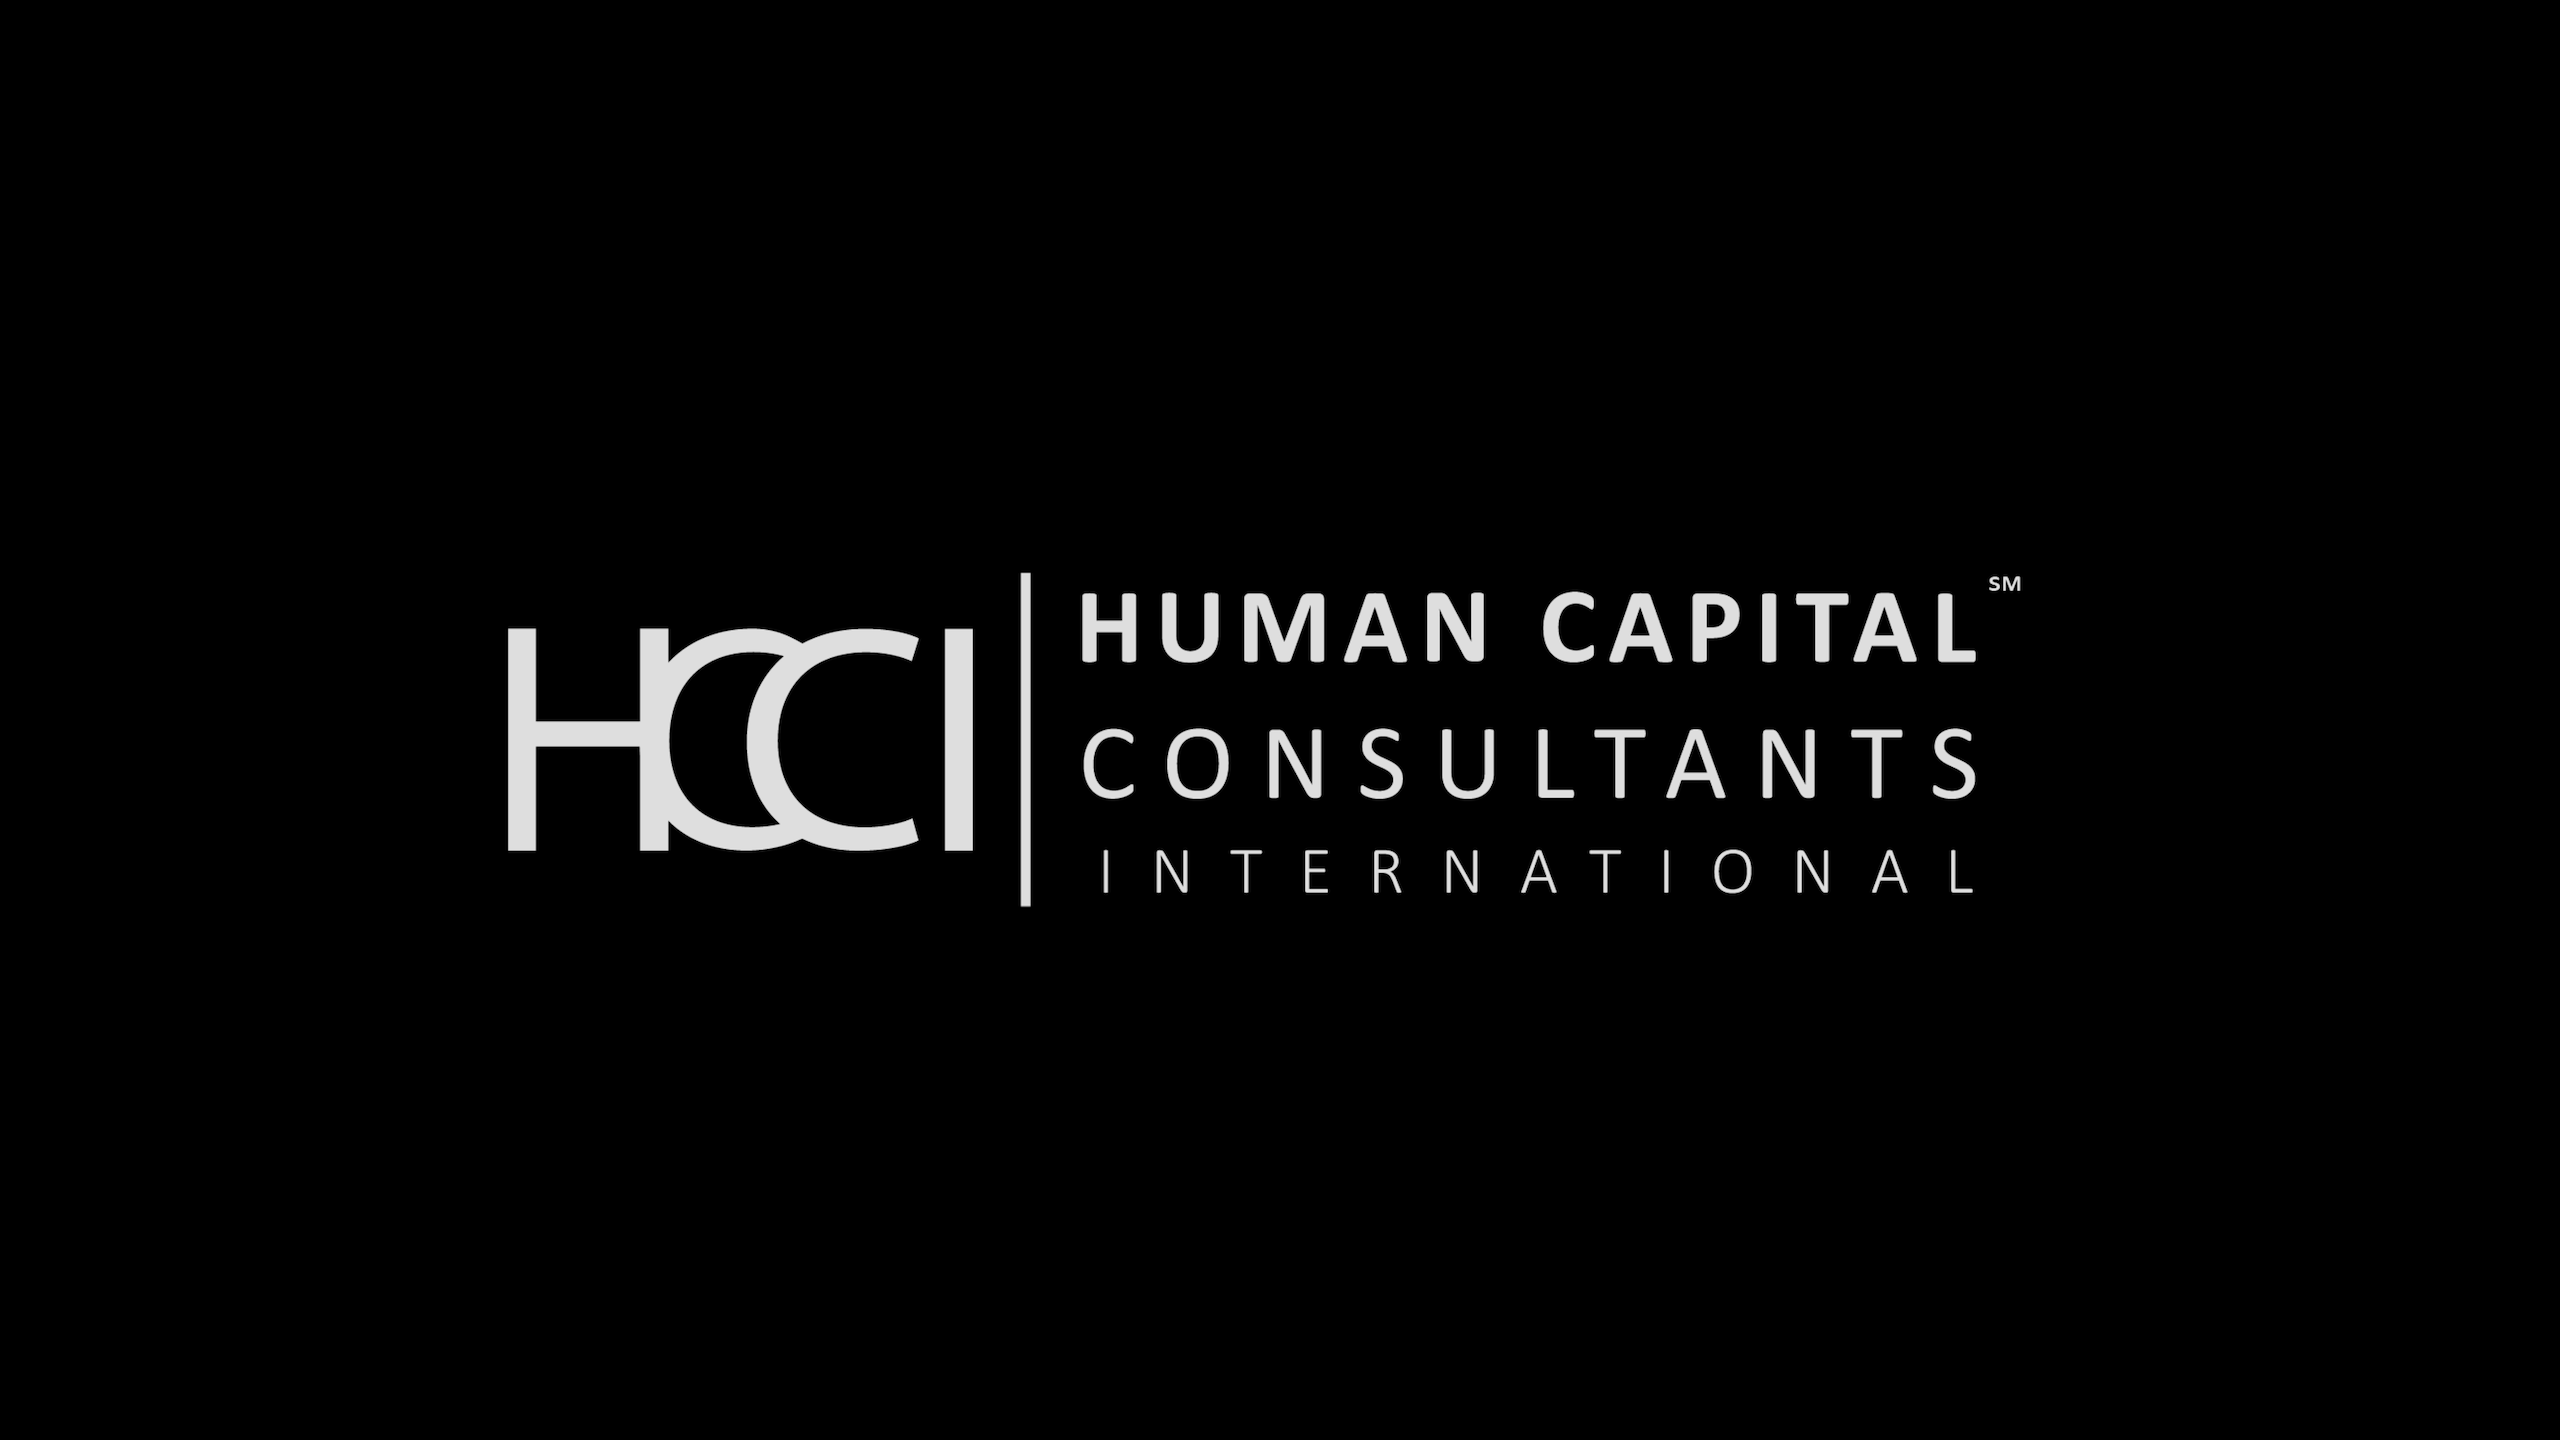 Human Capital Consultants International